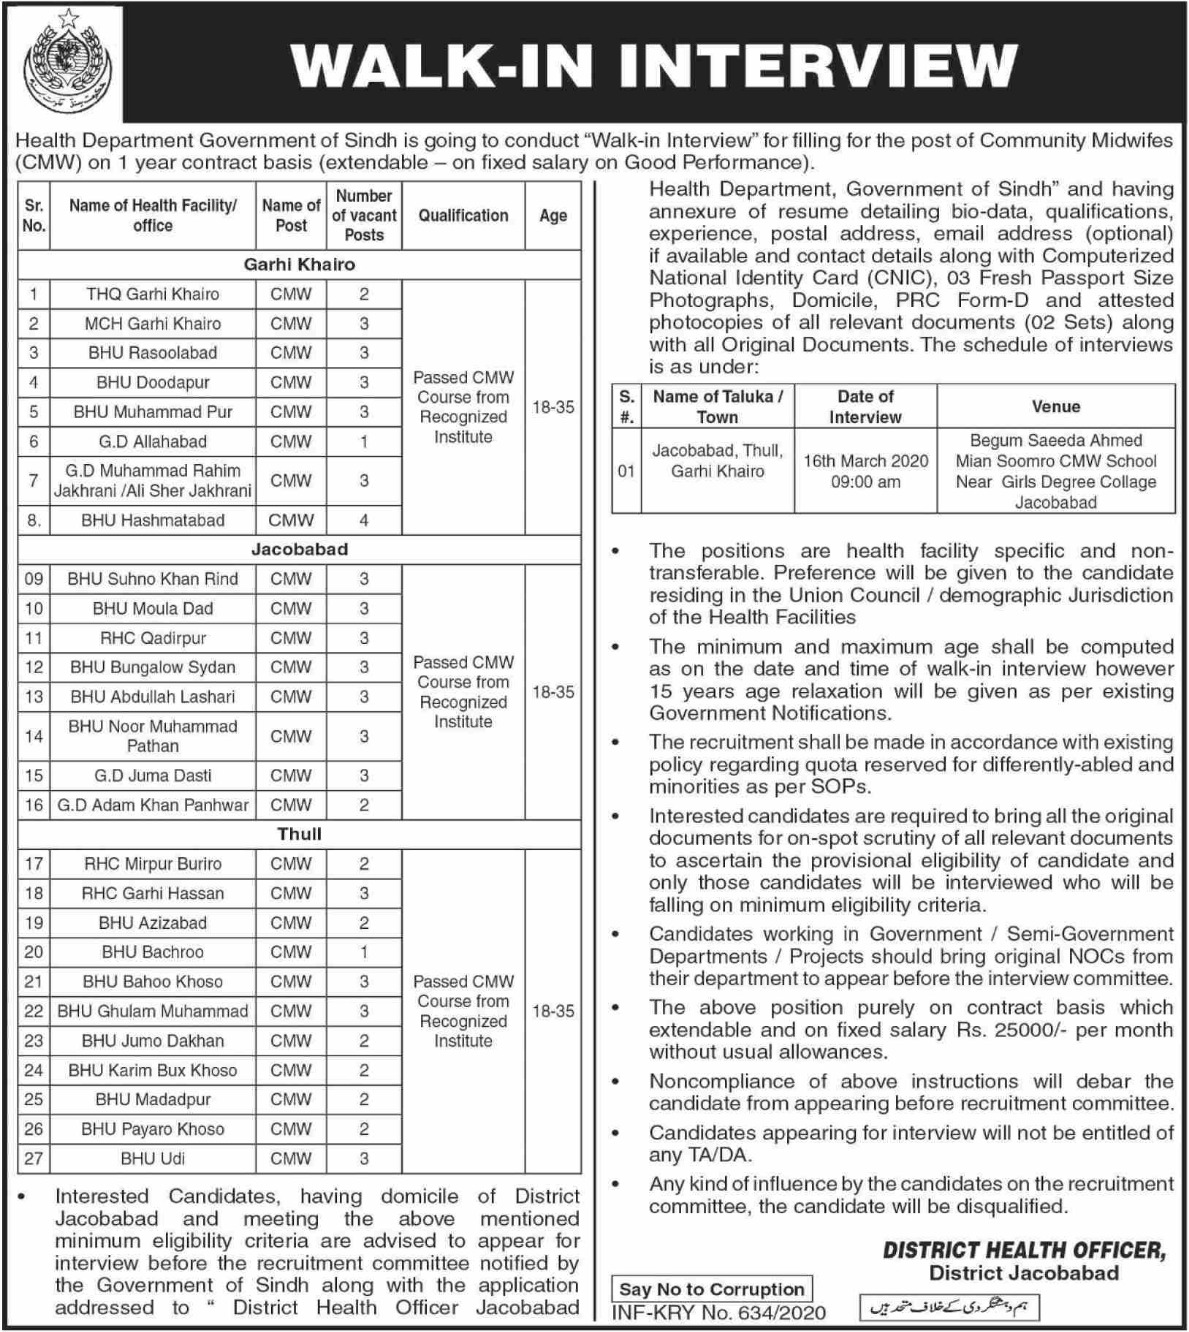 Health Department Government of Sindh Jobs 2020 District Health Officer Jacobabad